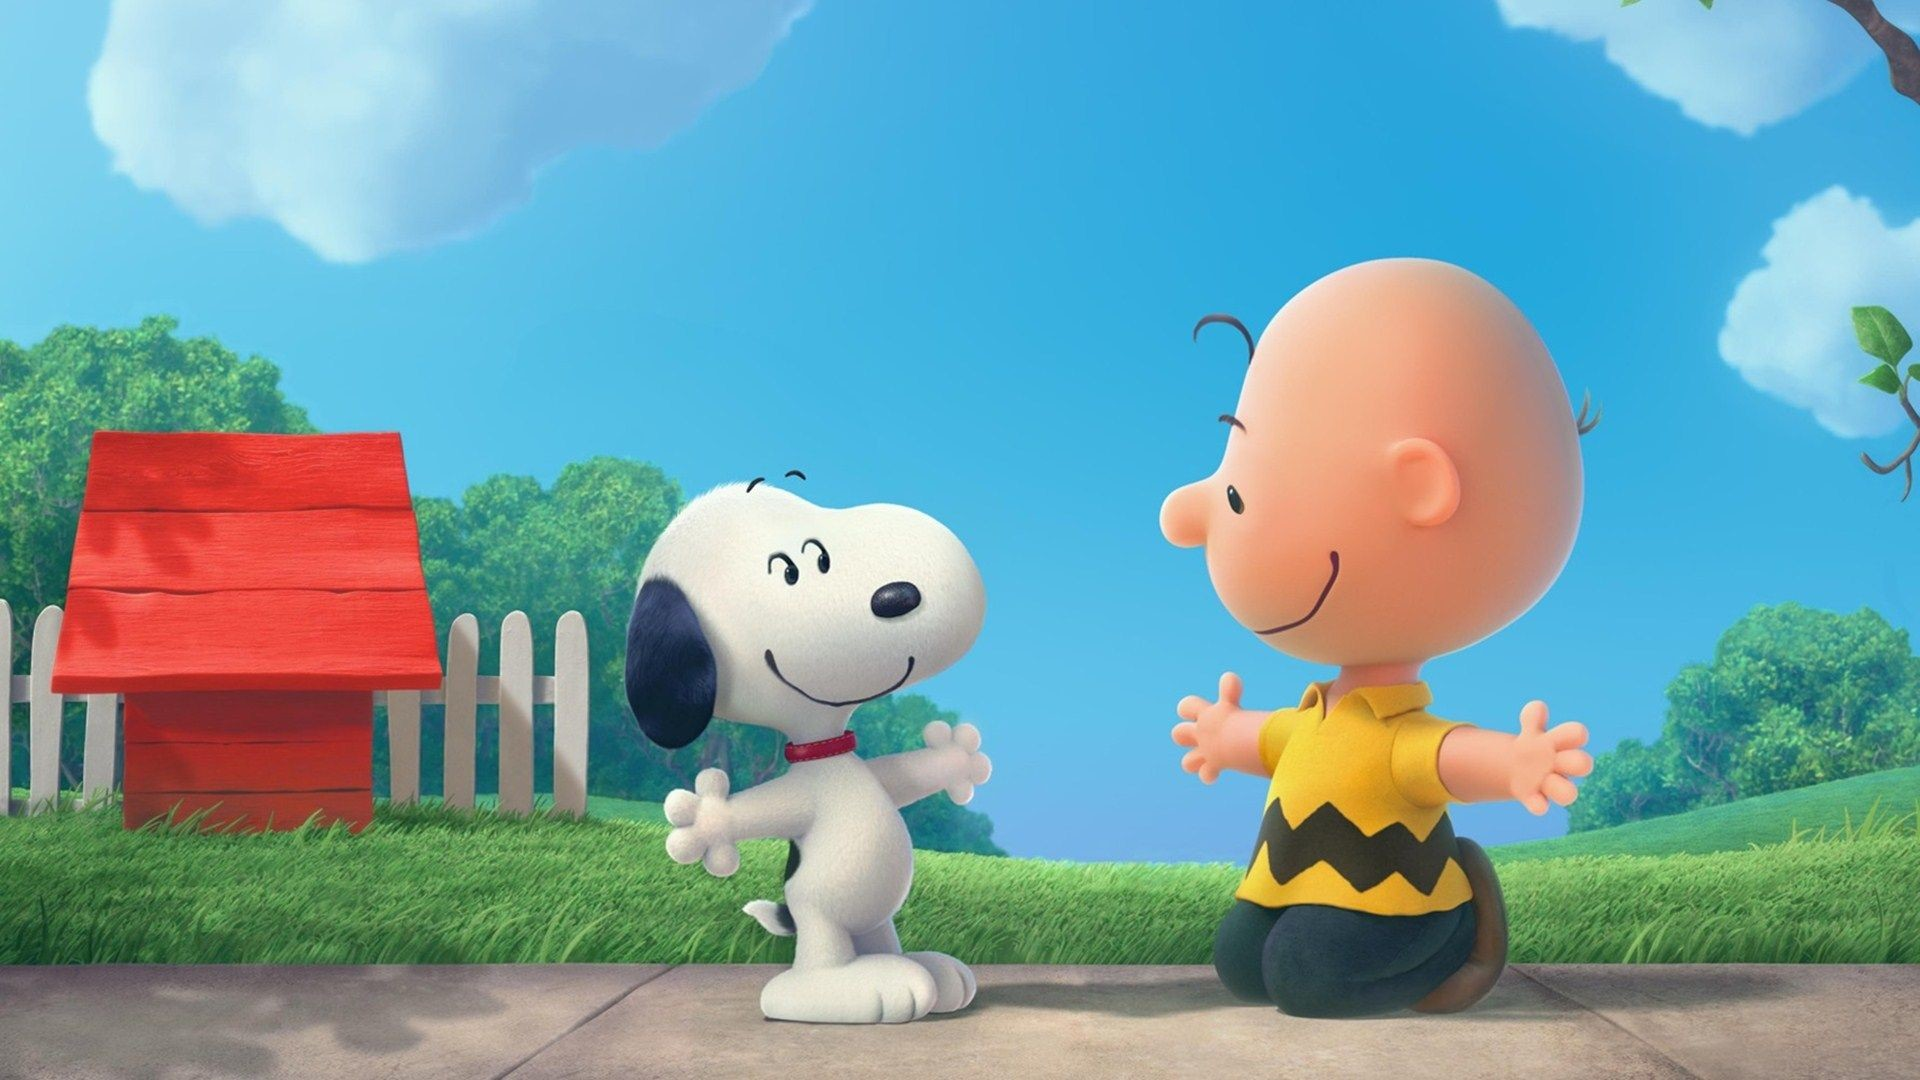 The Peanuts Movie Snoopy And Charlie Brown Wallpaper .